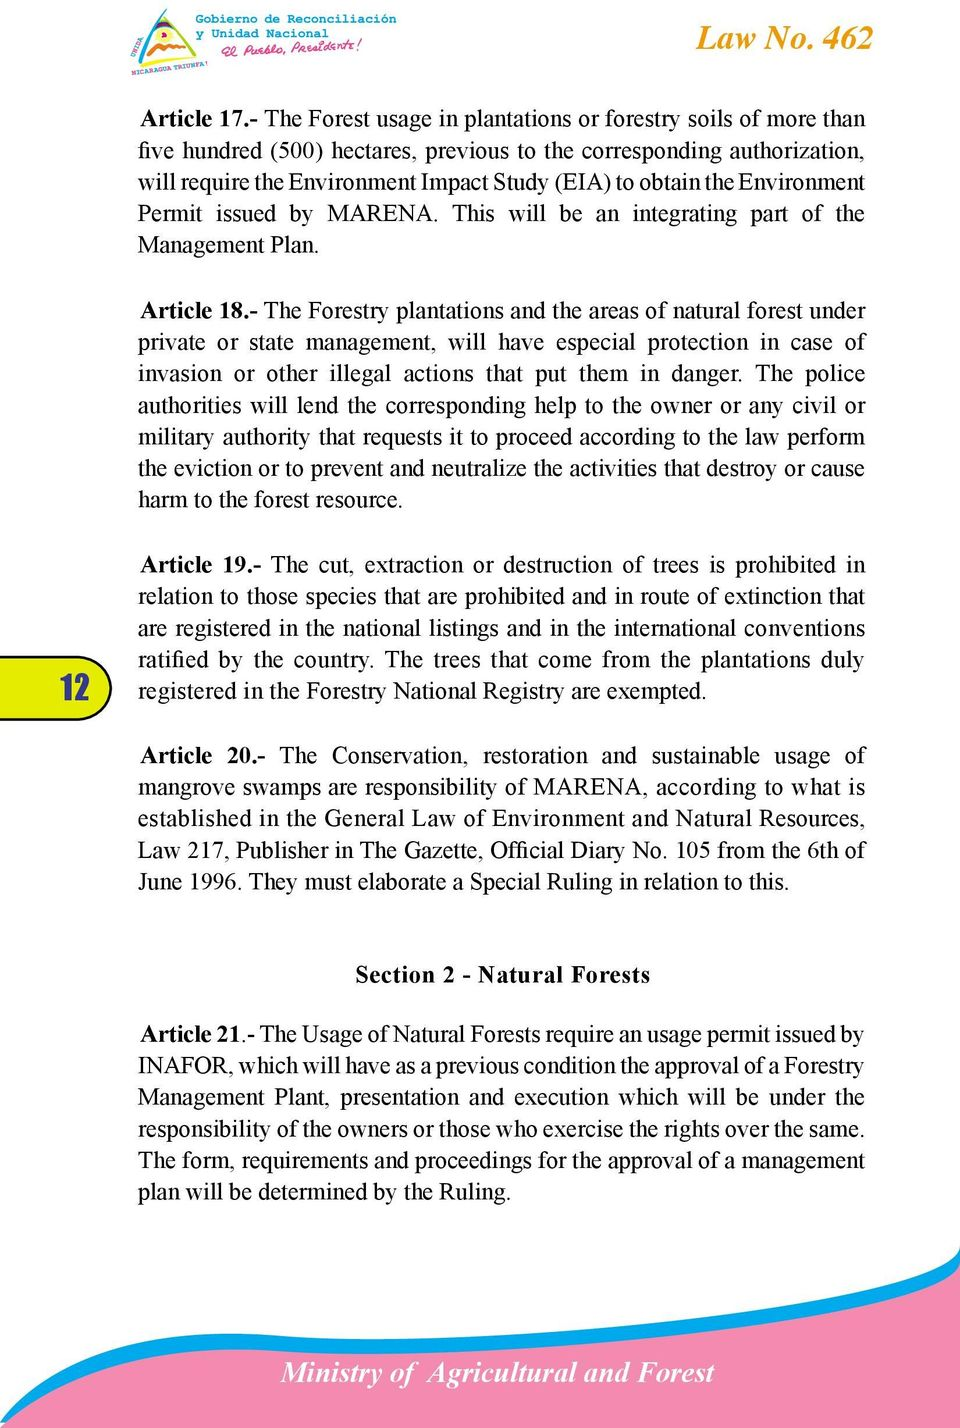 the Environment Permit issued by MARENA. This will be an integrating part of the Management Plan. Article 18.